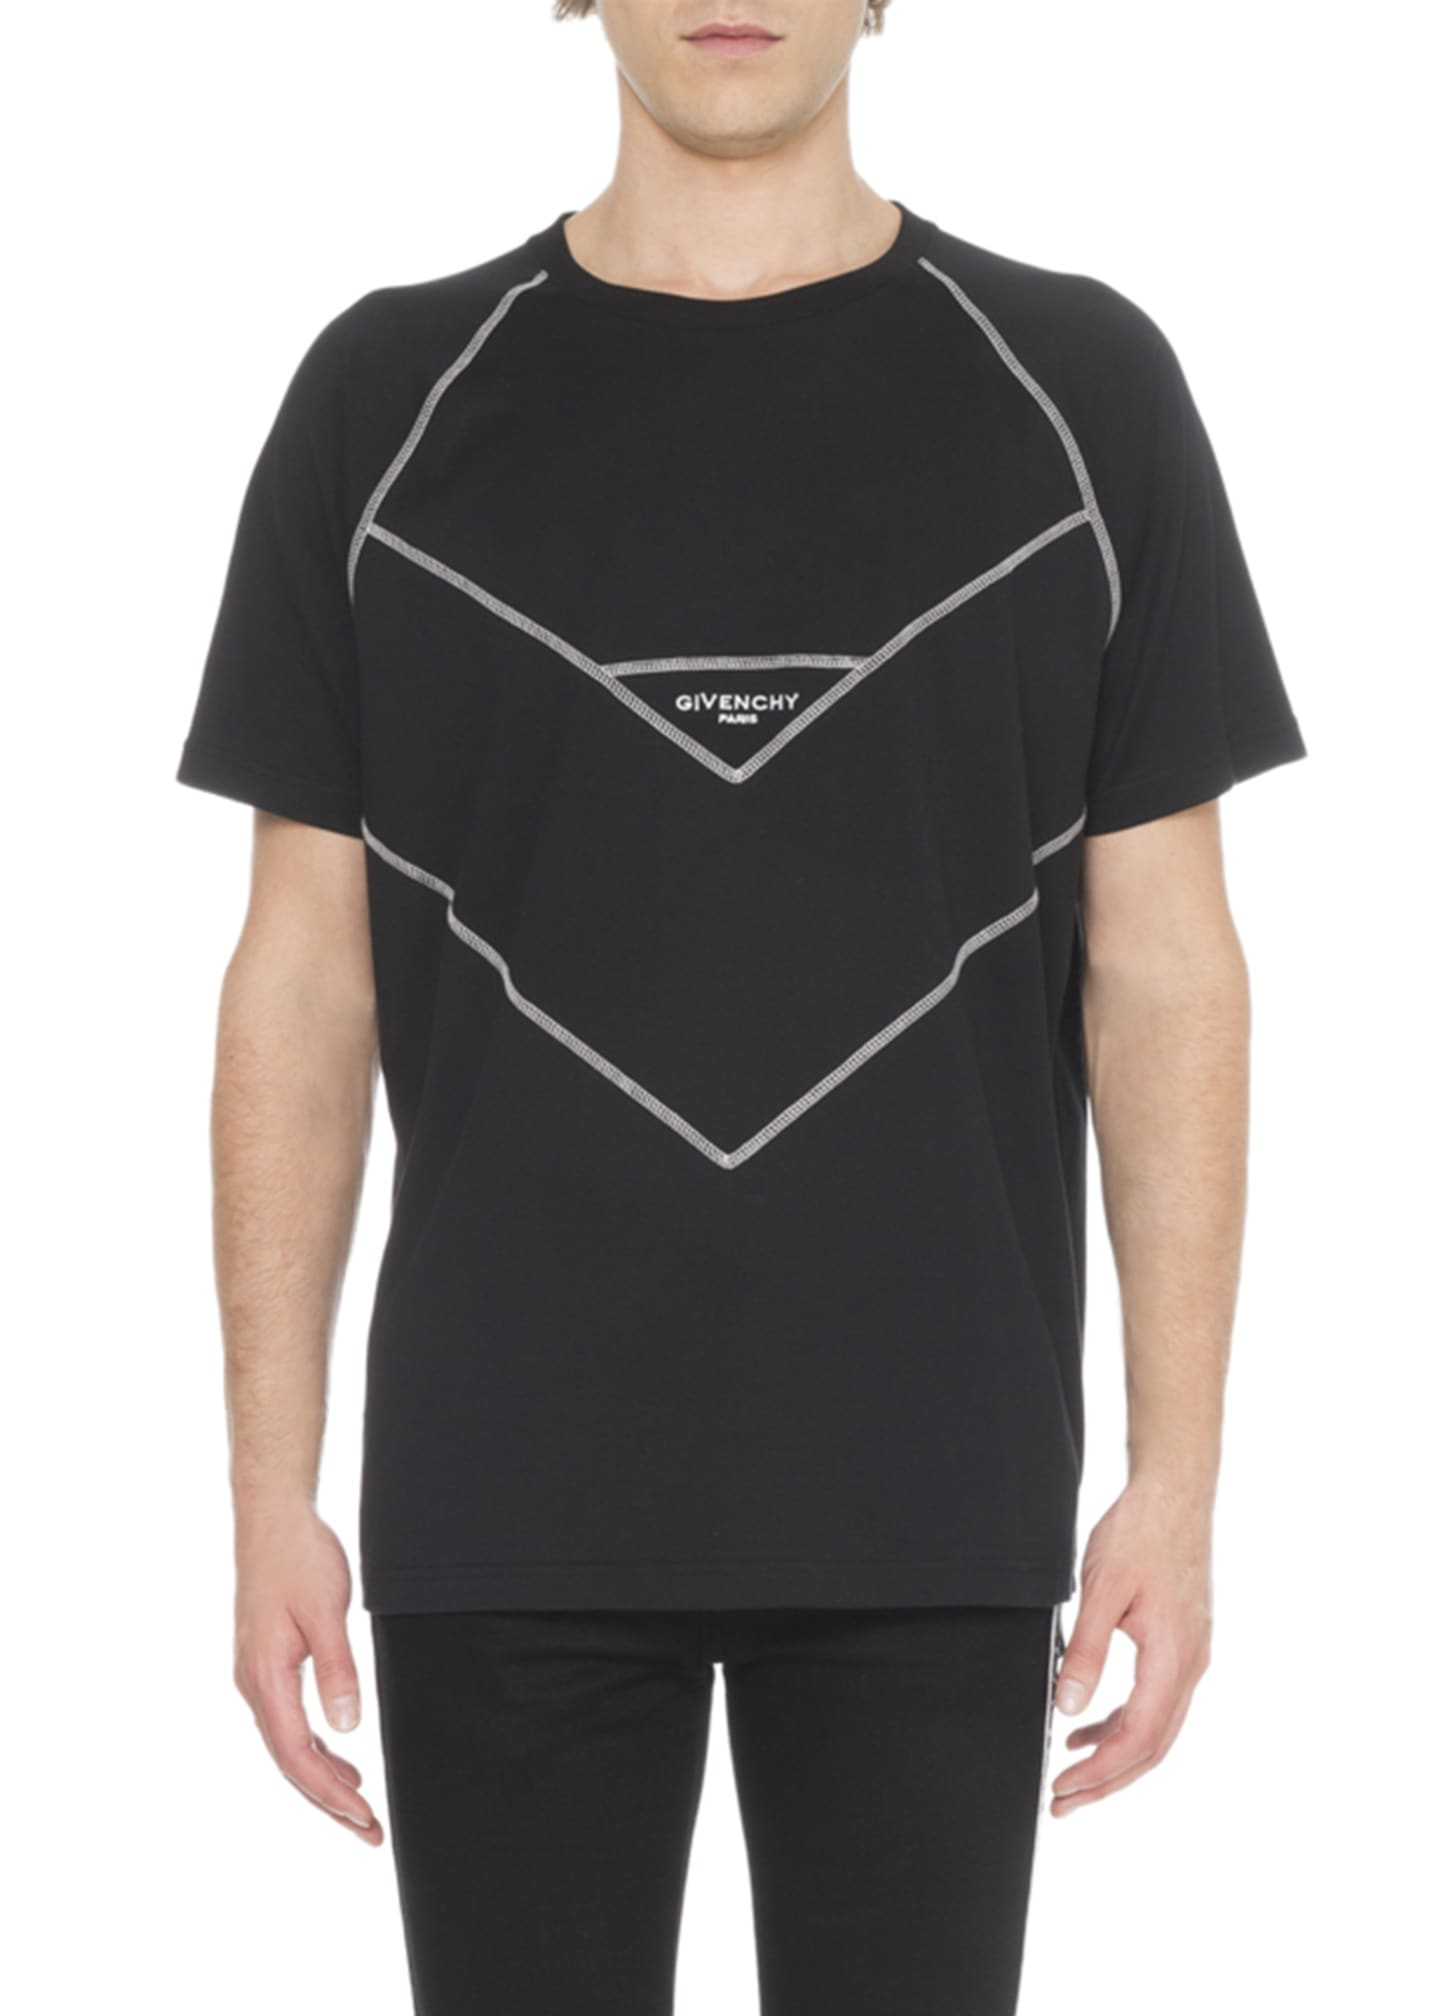 Givenchy Men's V Cut Design T-Shirt